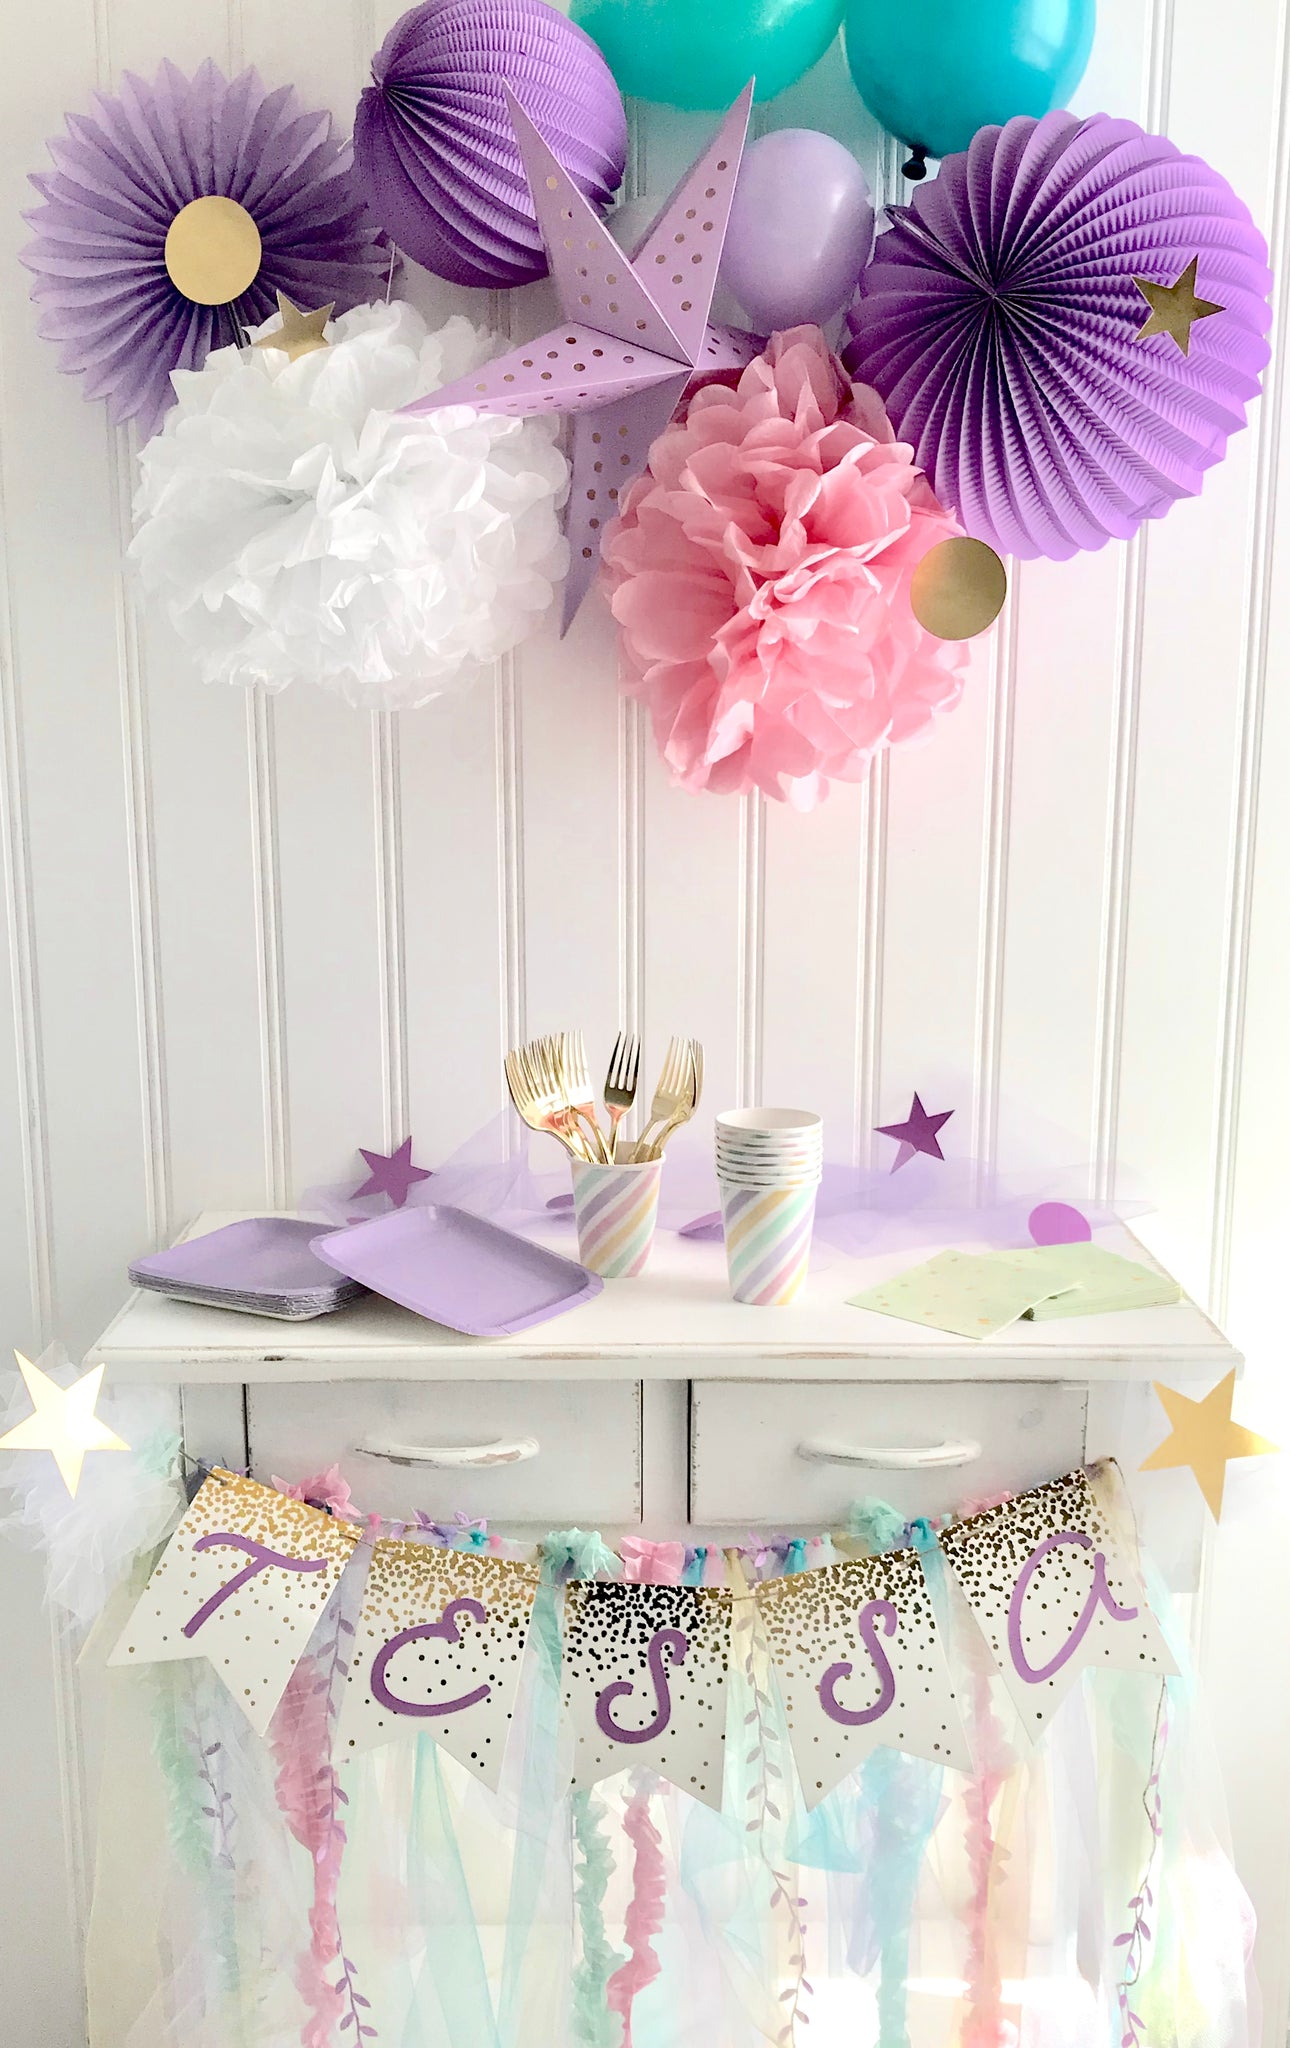 Rainbows & Stars Unicorn Party